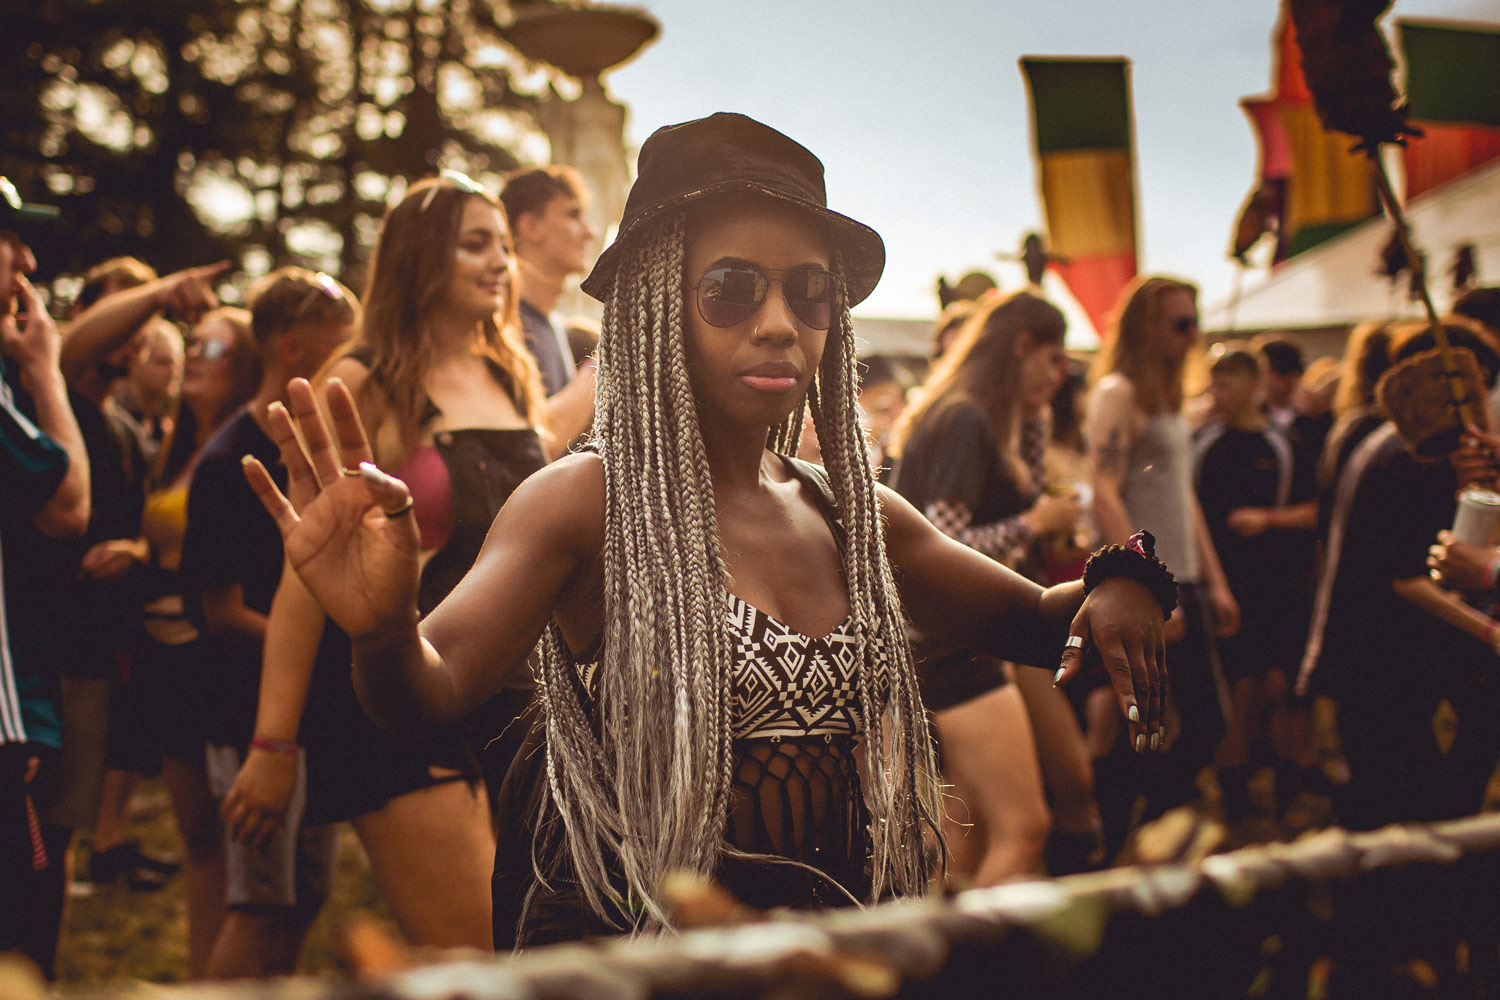 Festival go-er in bucket hat, sunglasses and long white-blonde braids dancing at sunset.